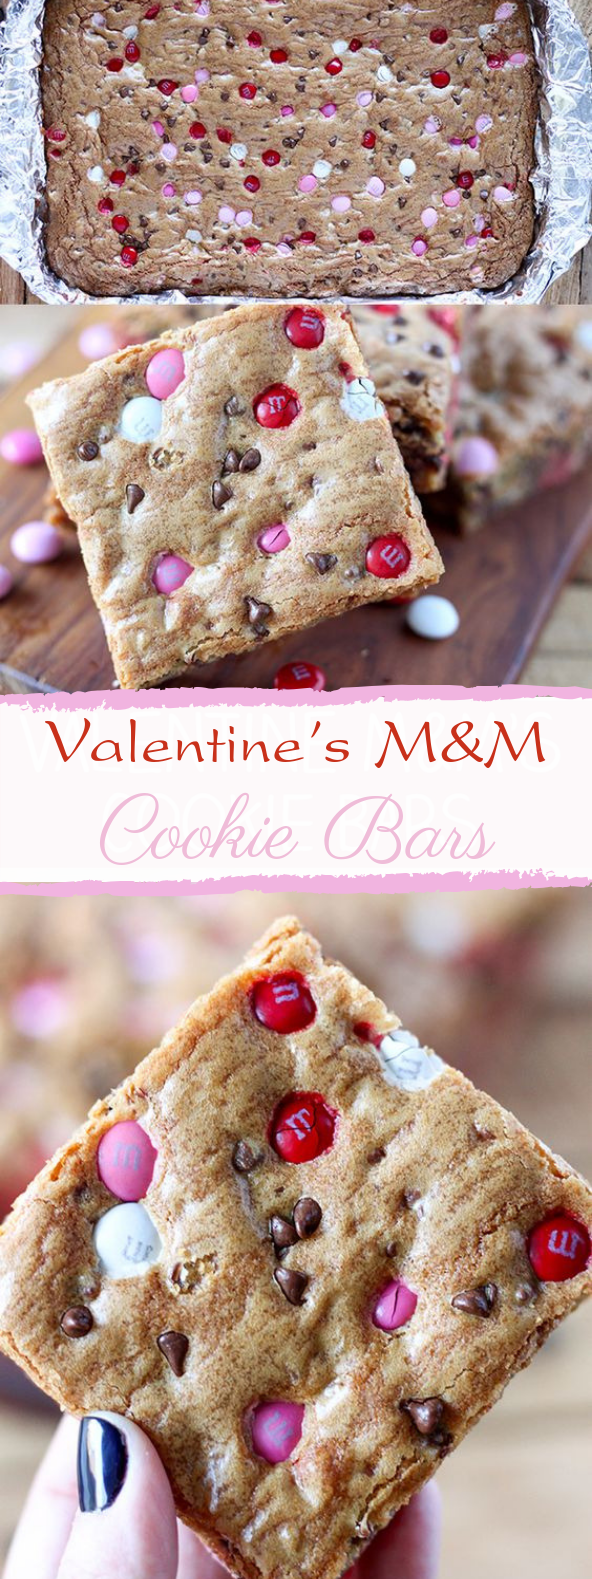 M&M's Valentine's Day Cookie Bars #cookies #desserts